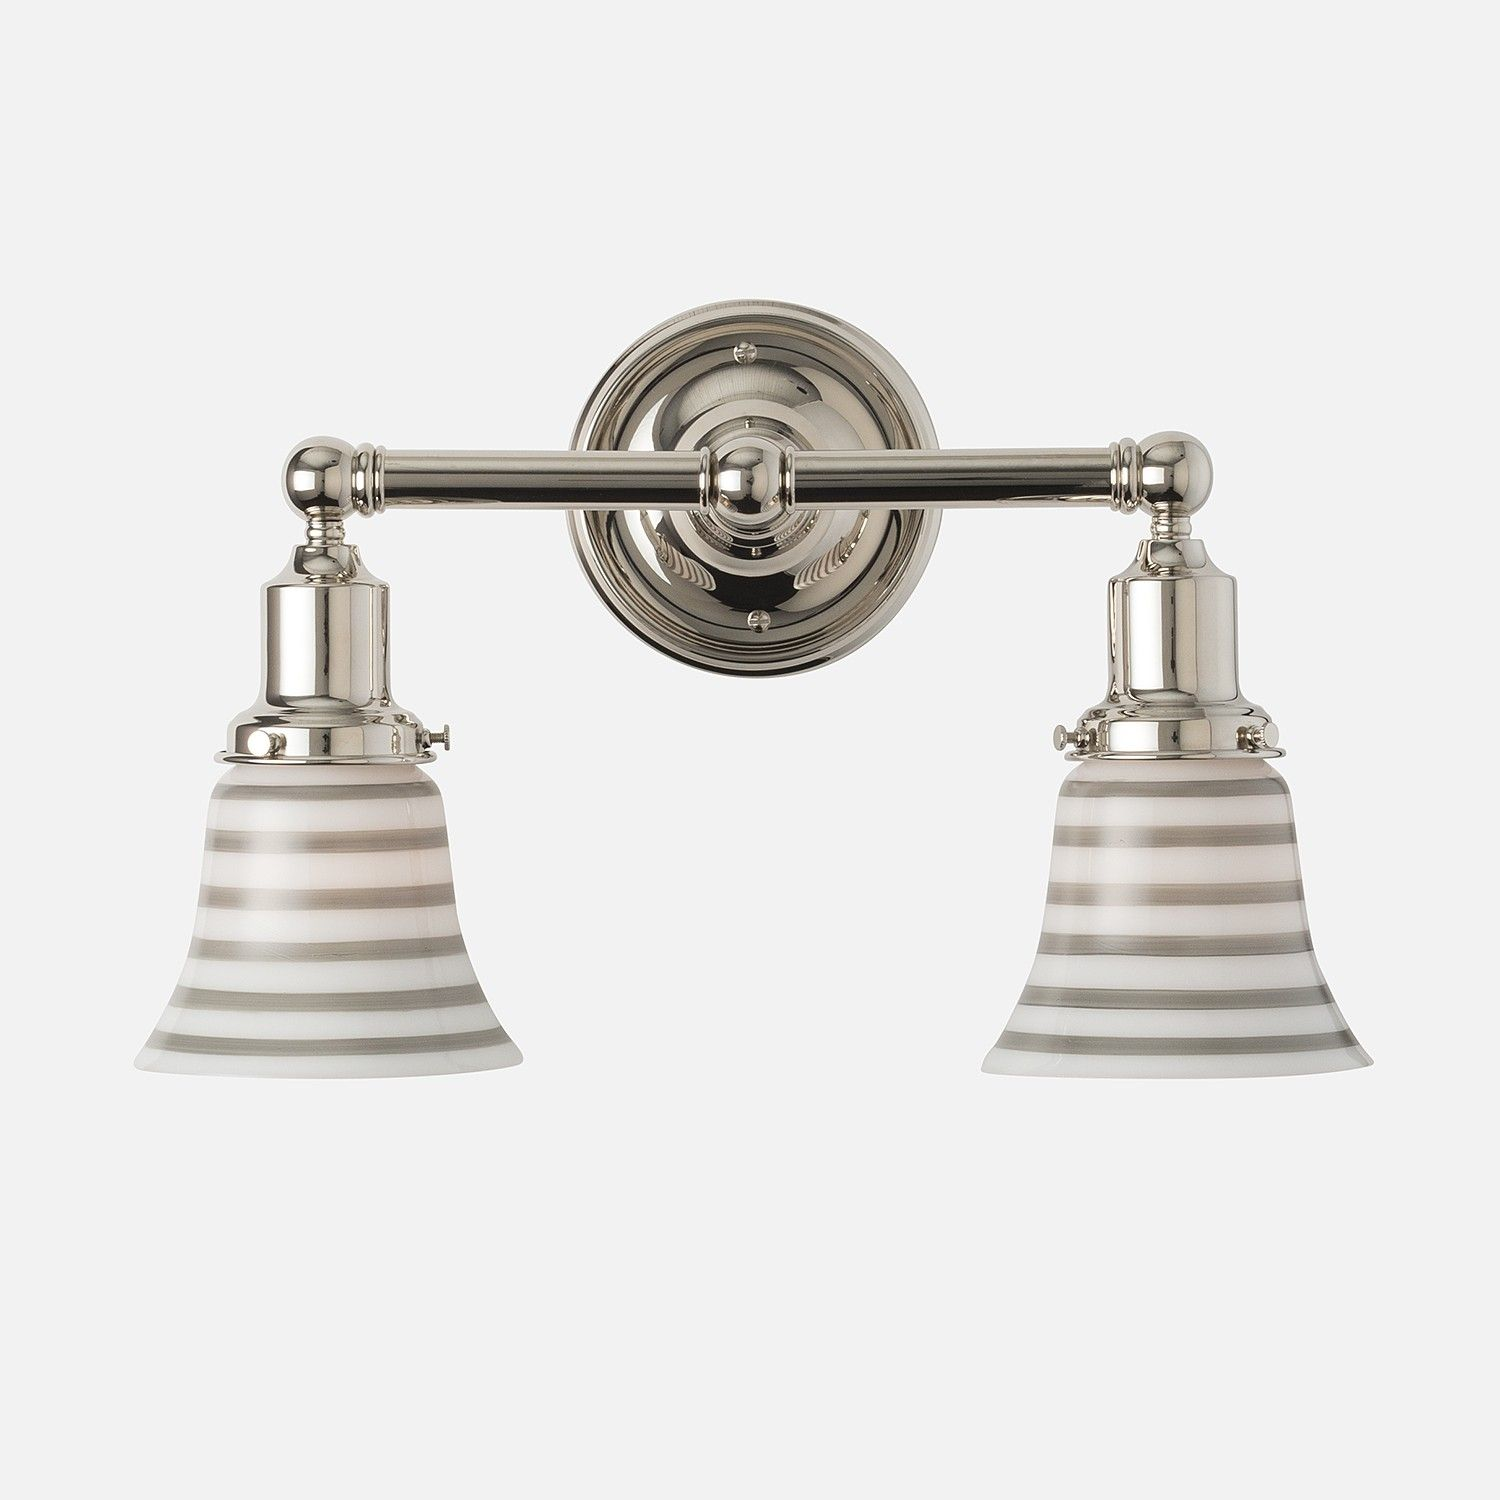 Irvine double sconce 225 schoolhouse electric wall sconces irvine double sconce from schoolhouse electric supply co available in polished nickel satin track lightinghouse aloadofball Images